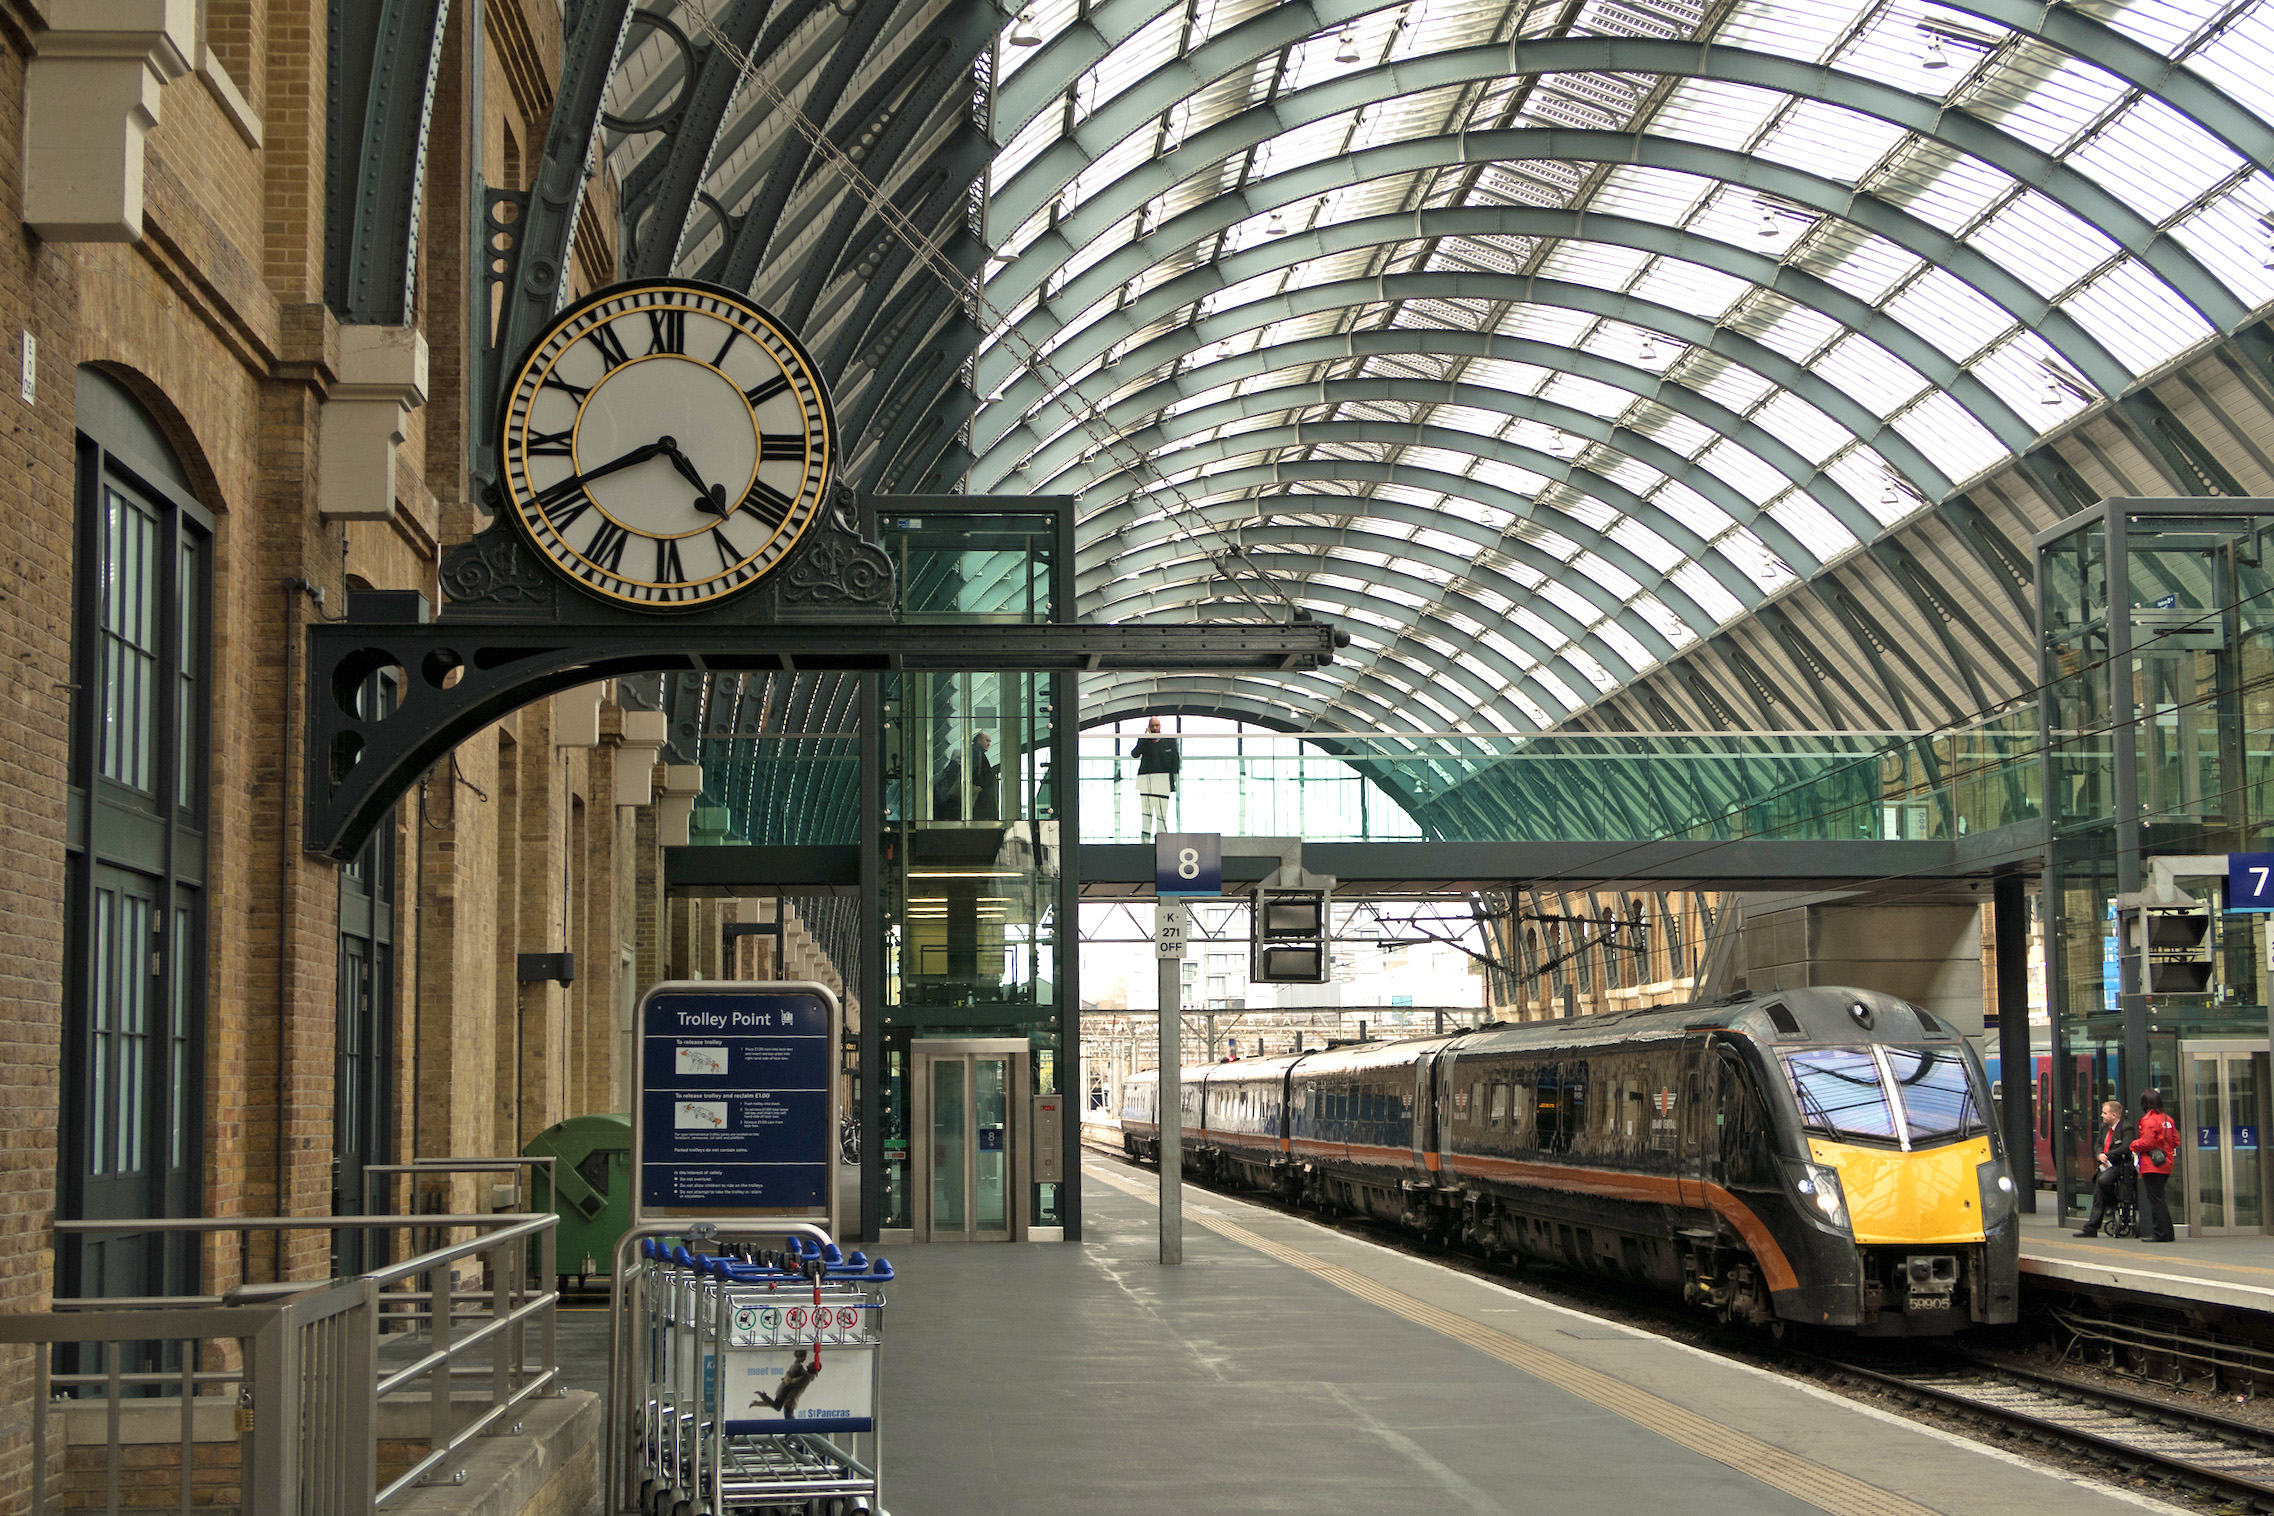 Case Study Kings Cross Platform 8 Smith Of Derby Building A Synchronous Clock The However Winged Its Way To Our Workshops Where Within Earshot Trains On Adjacent Main Railway Line It Would Feel Quite At Home